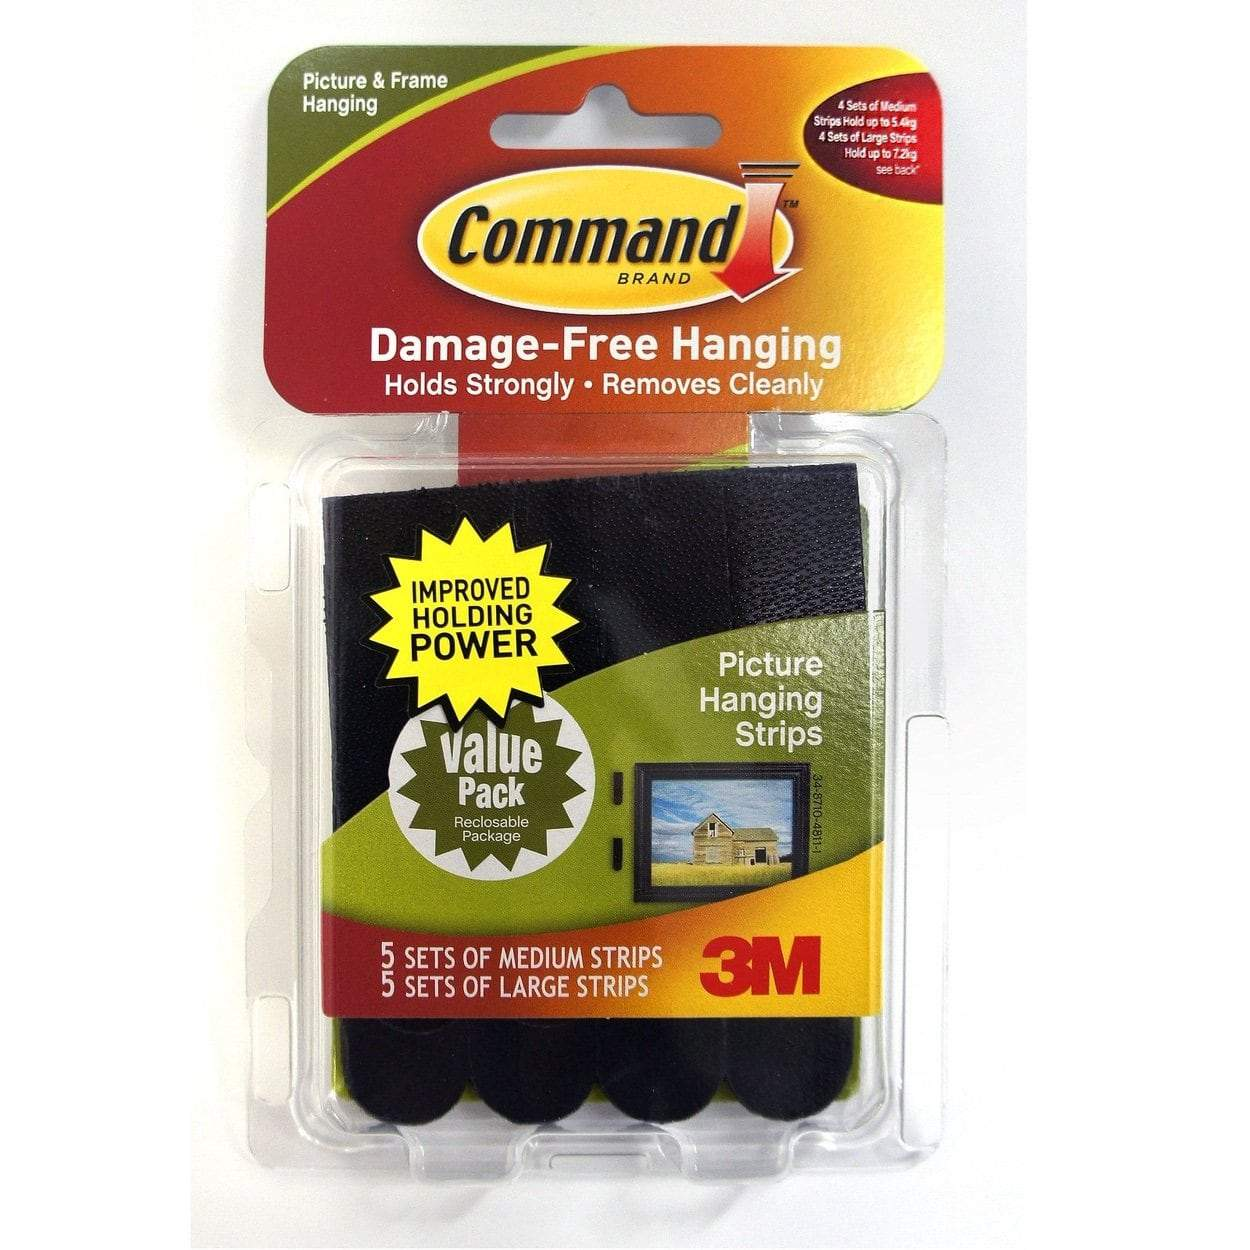 Photo of 3M Command Medium & Large Picture Hanging Strips